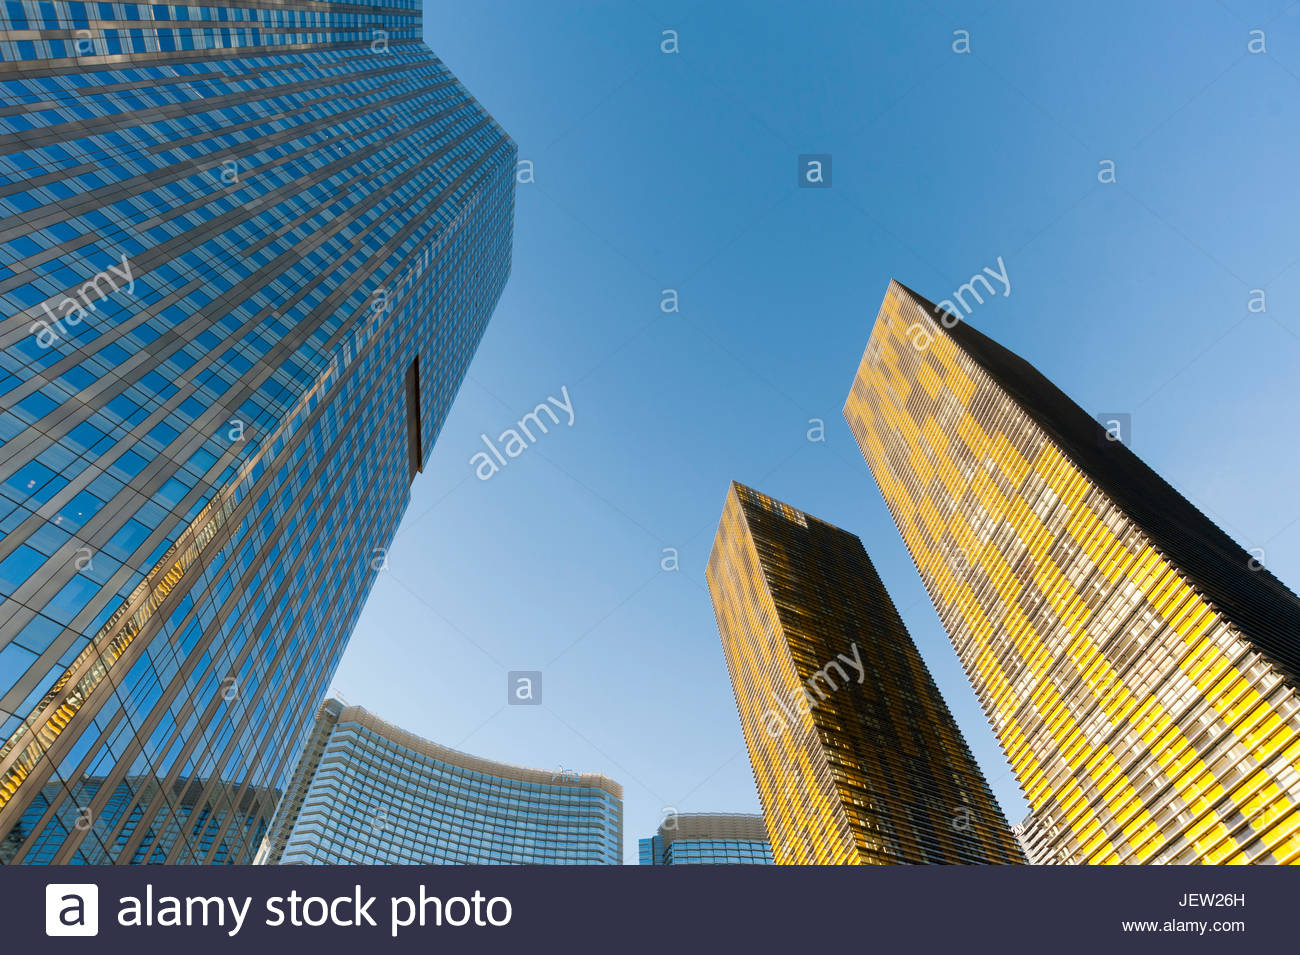 Looking up at the high rises in the City Center Complex, along the Las Vegas Strip. - Stock Image